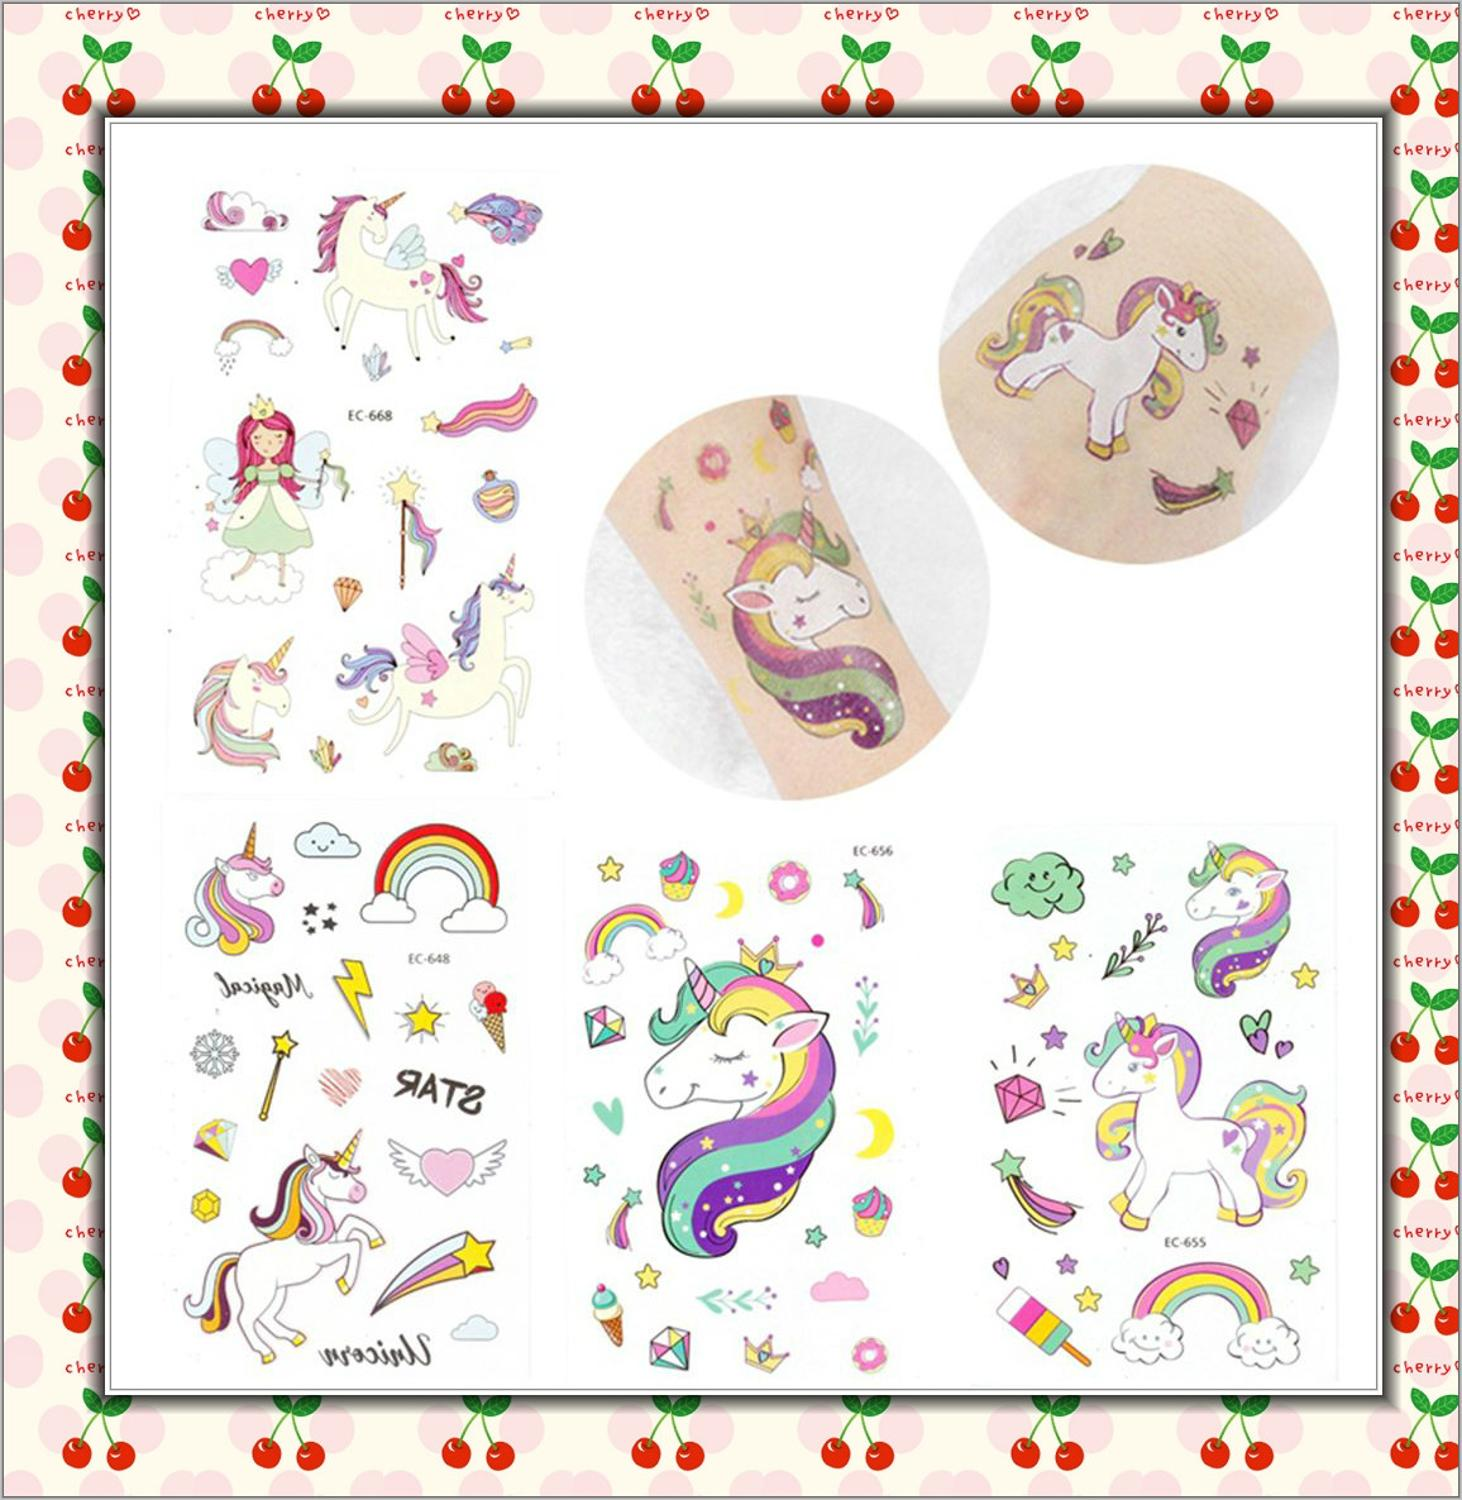 5Pcs Disposable Tattoo Sticker Unicorn Party Decoration Baby Kids Unicorn Birthday Party Favors Temporary Tattoos Supplies 2